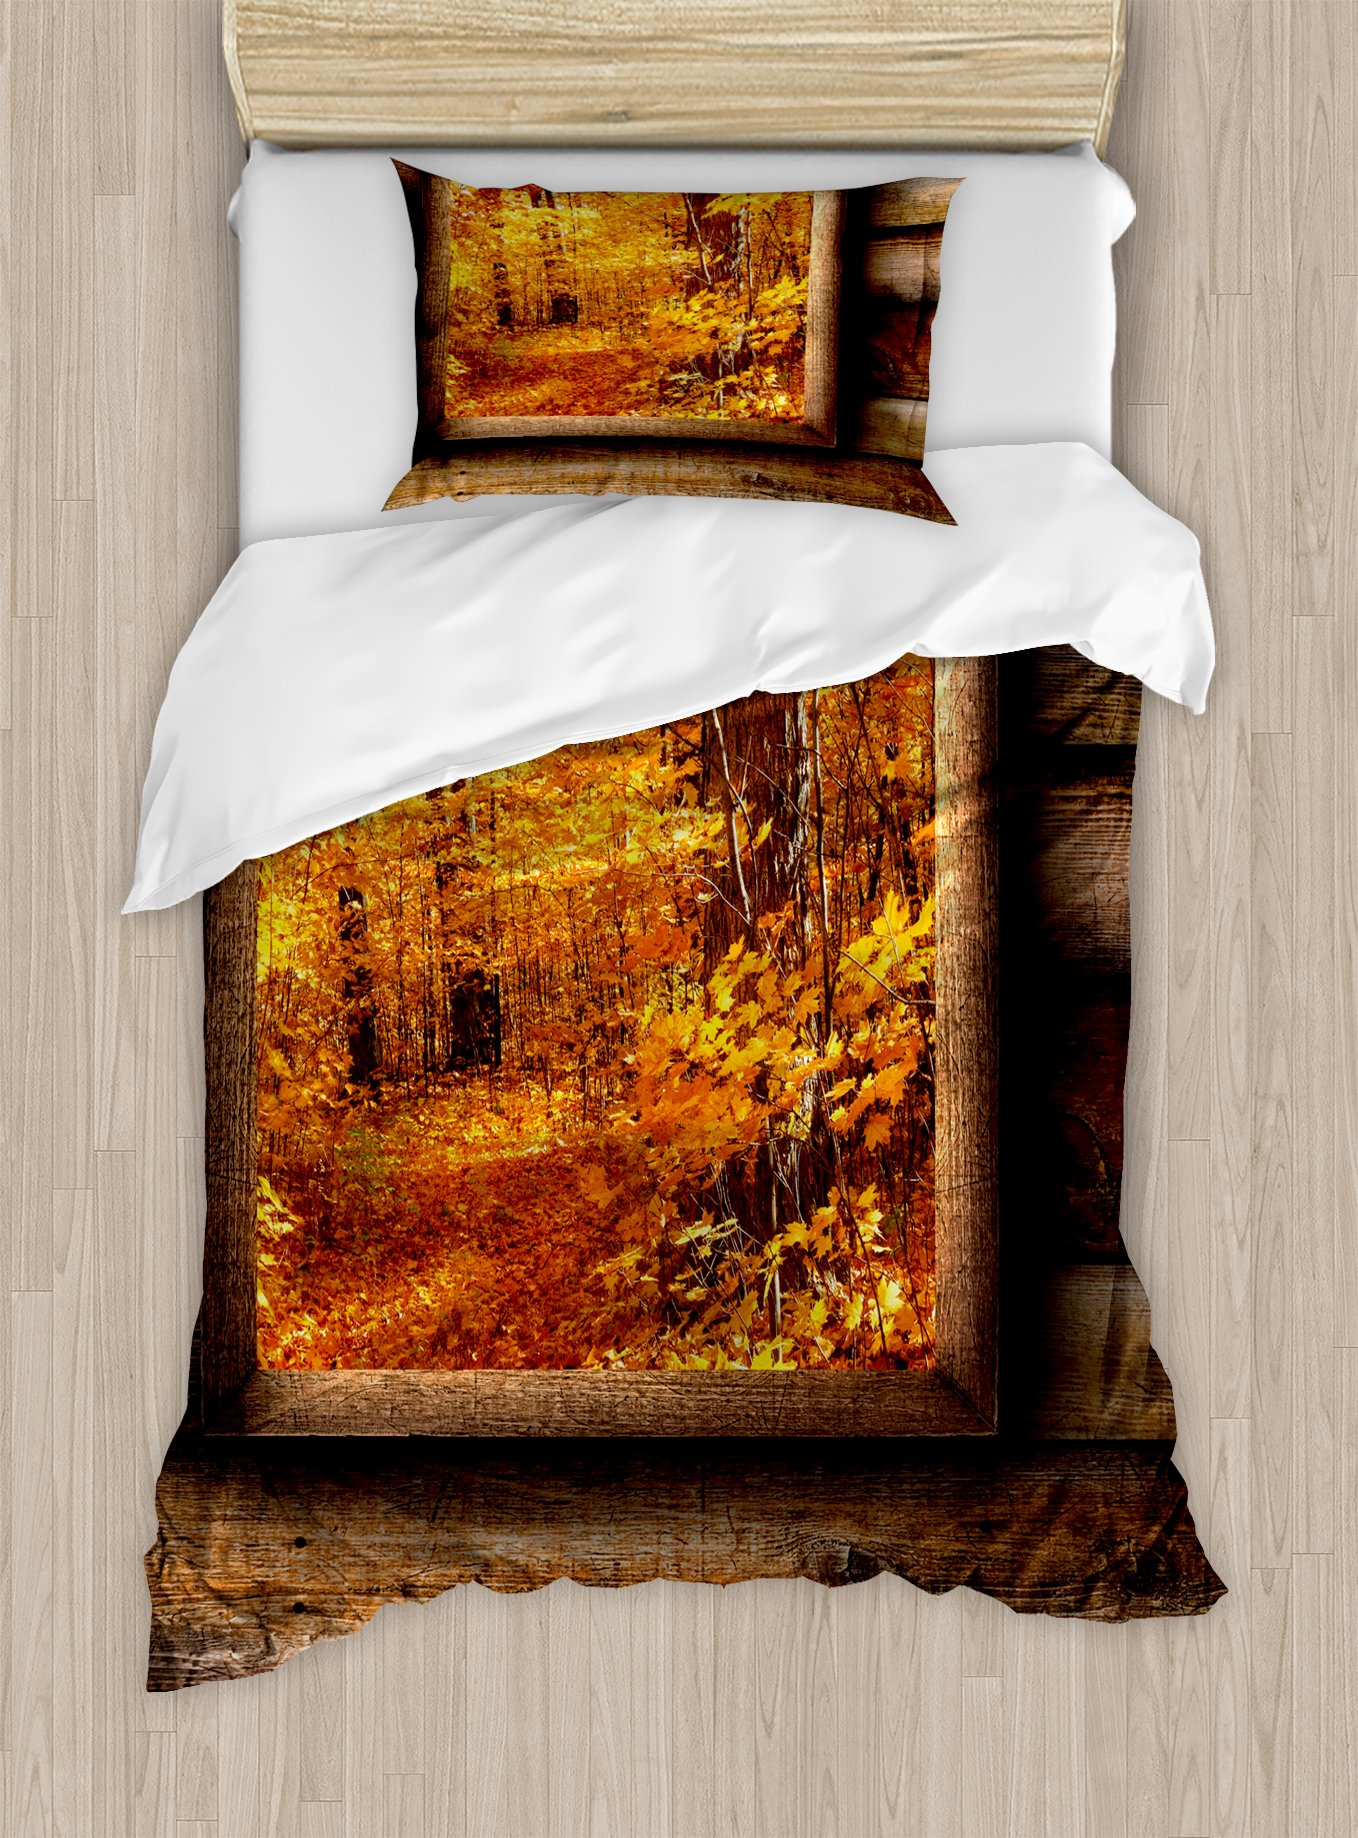 Ambesonne Fall Duvet Cover Set Twin Size, Fall Foliage View from Square Shaped Wooden Window Inside Cottage Rustic Life Photo, Decorative 2 Piece Bedding Set with 1 Pillow Sham, Orange Brown